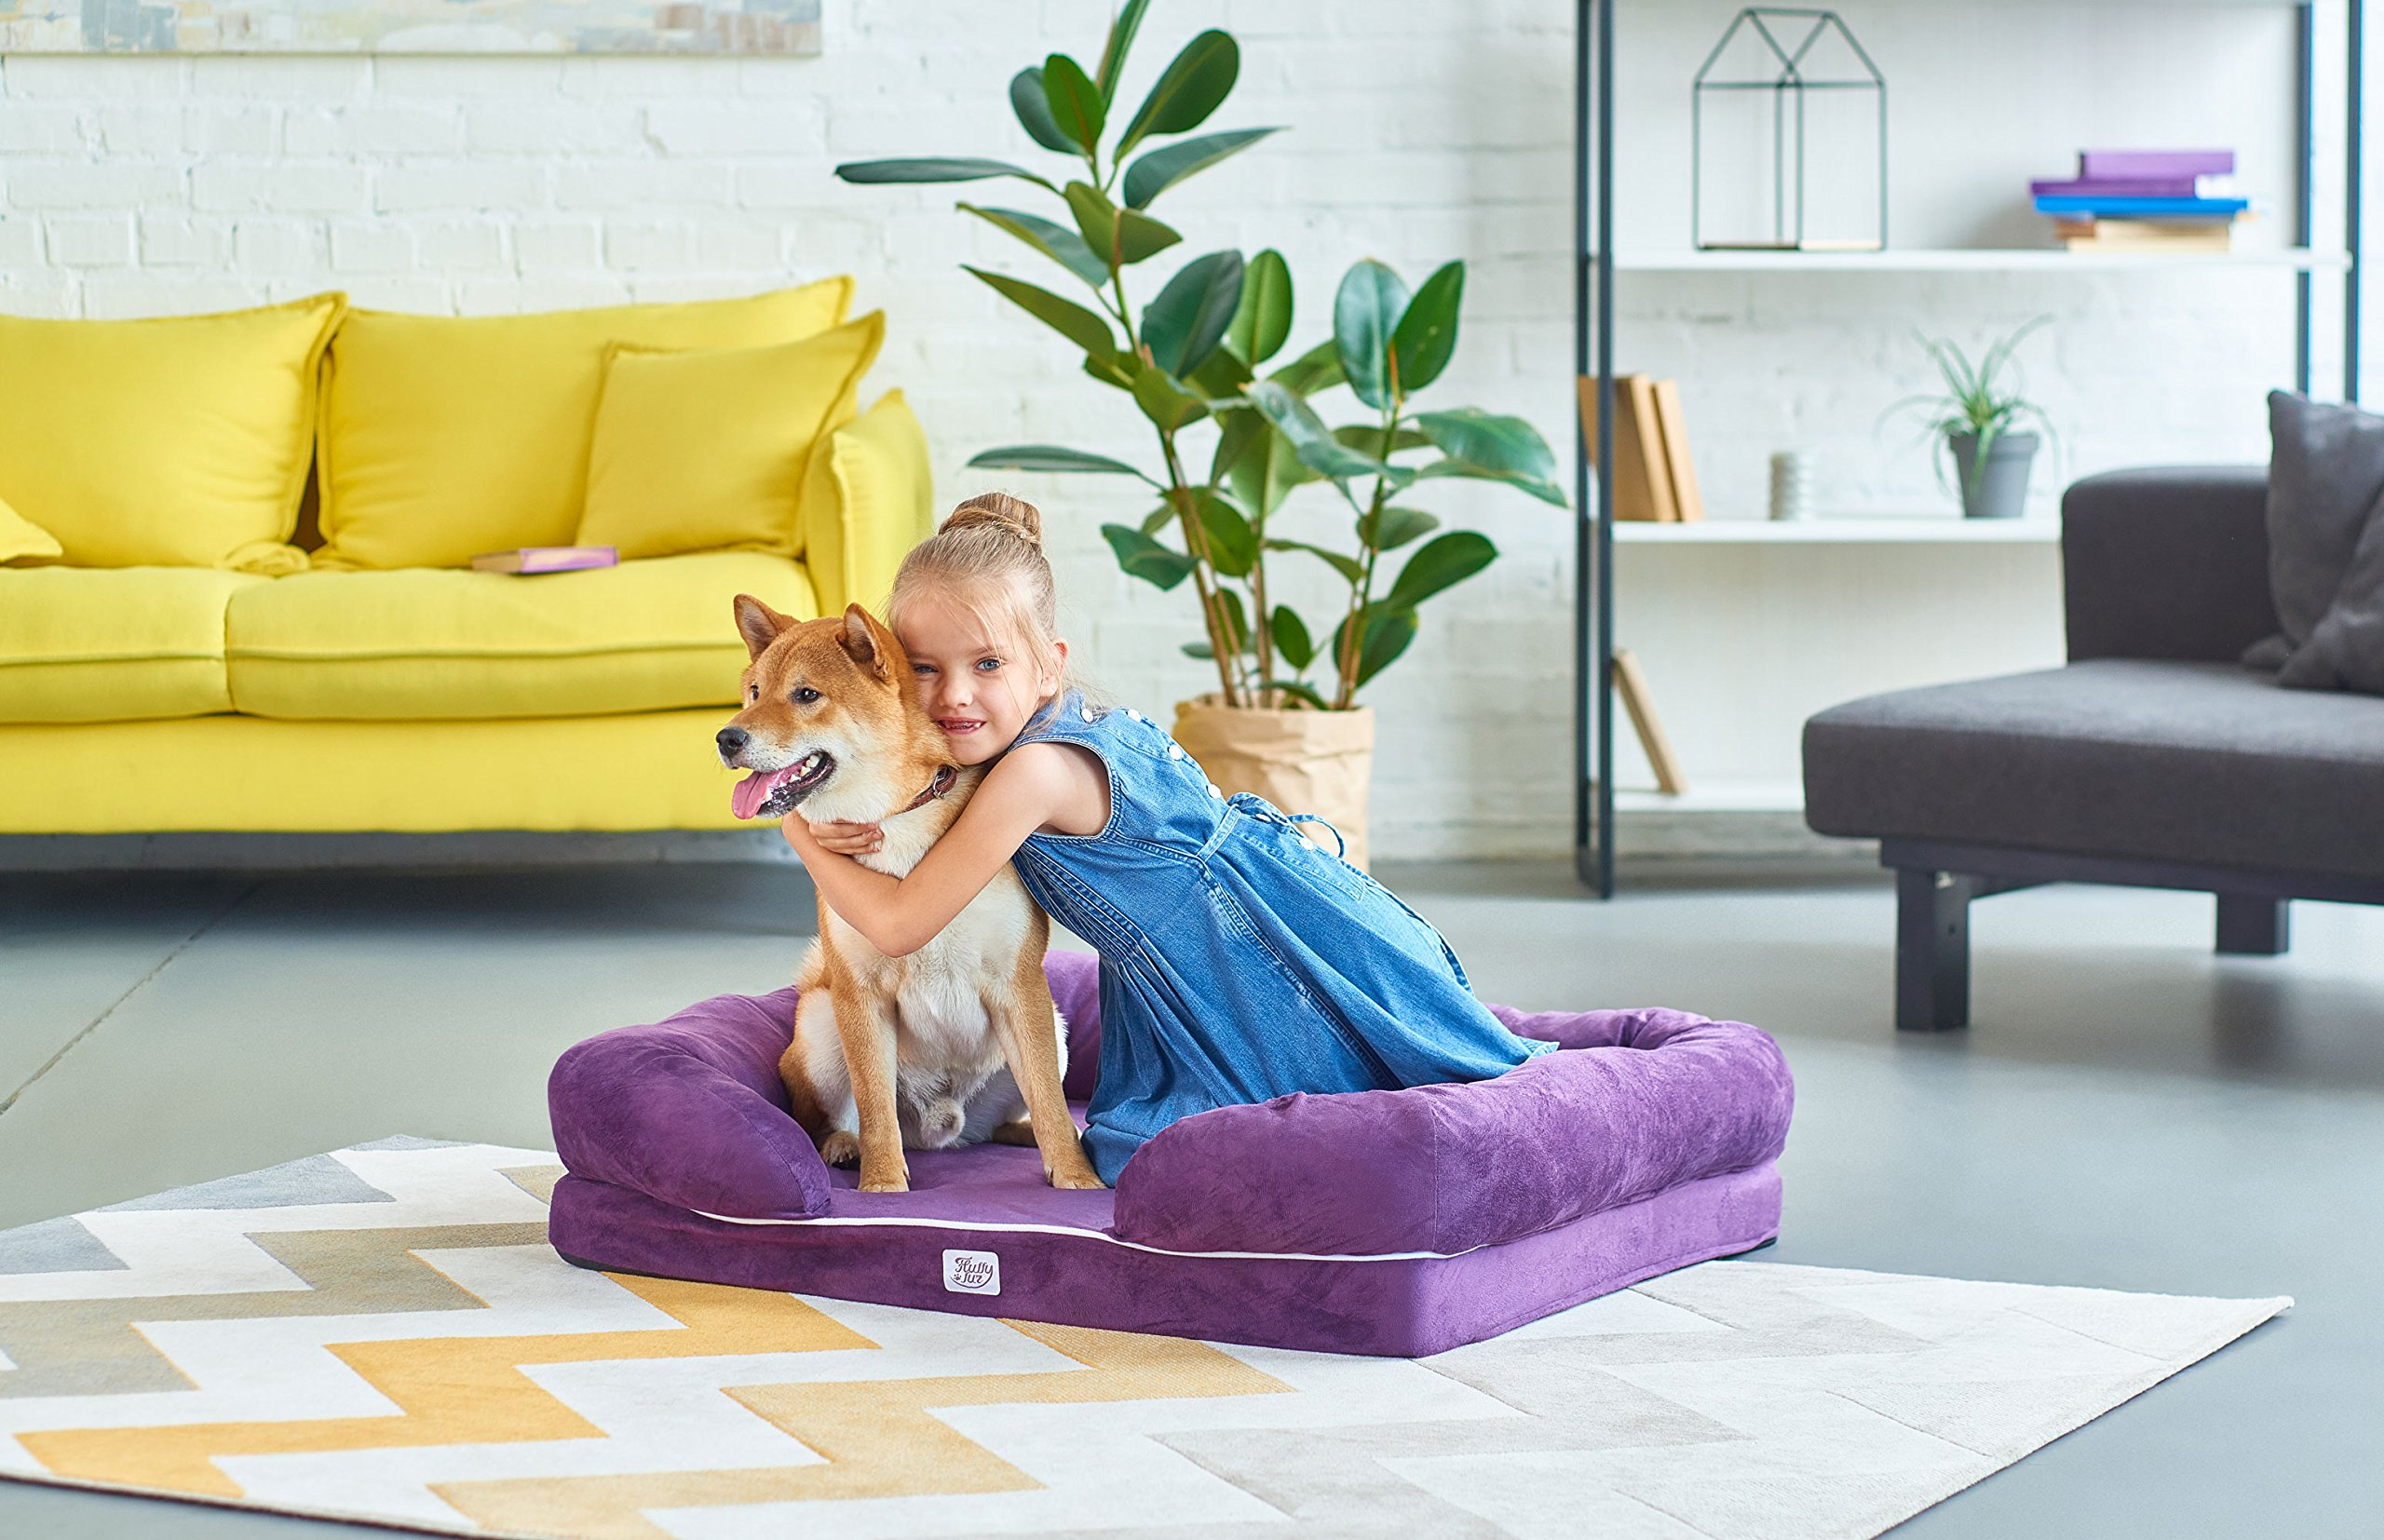 Orthopedic Dog Bed – Best Memory Foam Bed for Dogs Cats – Premium Pet Mattress - Large Puppy Couch – Comfortable Dog Lounge Pillow – Washable Fleece Cover Non-Slip Bottom (S, Purple)